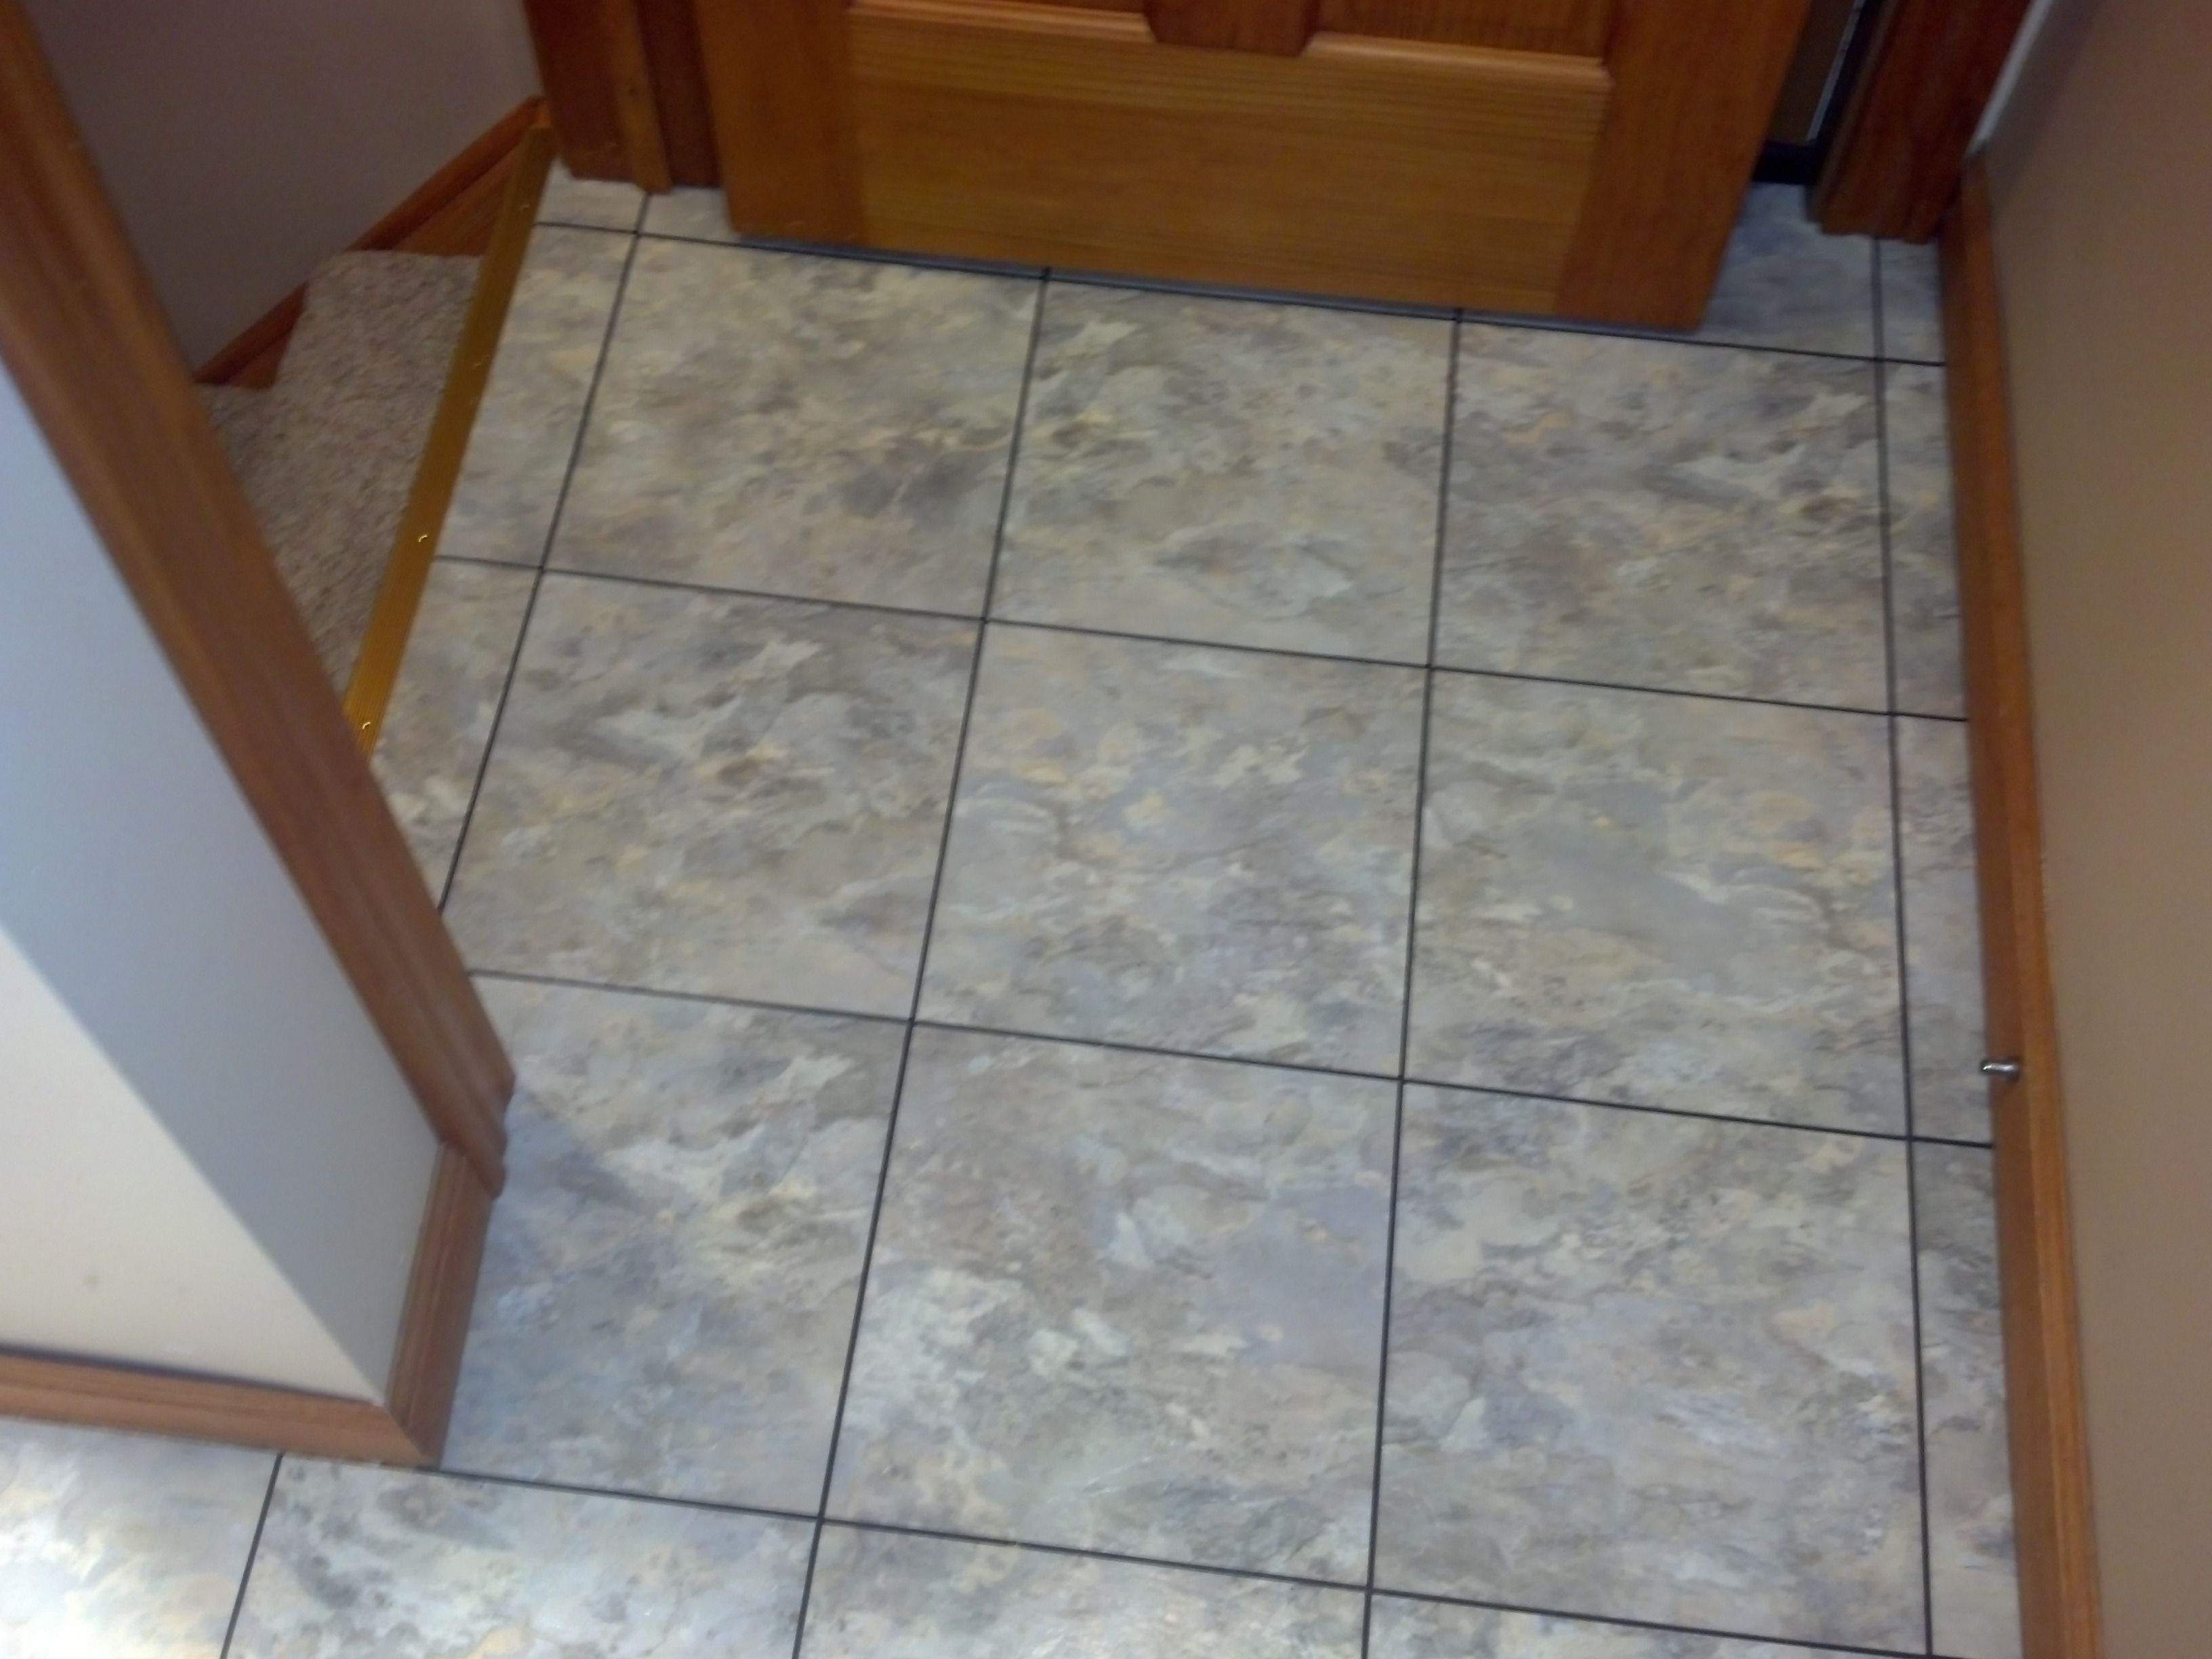 Beautiful 12 x 12 luxury vinyl tile made by tarkett nafco the beautiful 12 x luxury vinyl tile made by tarkett nafco the tile is installed in a cape cod home in madeira ohio 45243 by certified flooring install from doublecrazyfo Choice Image